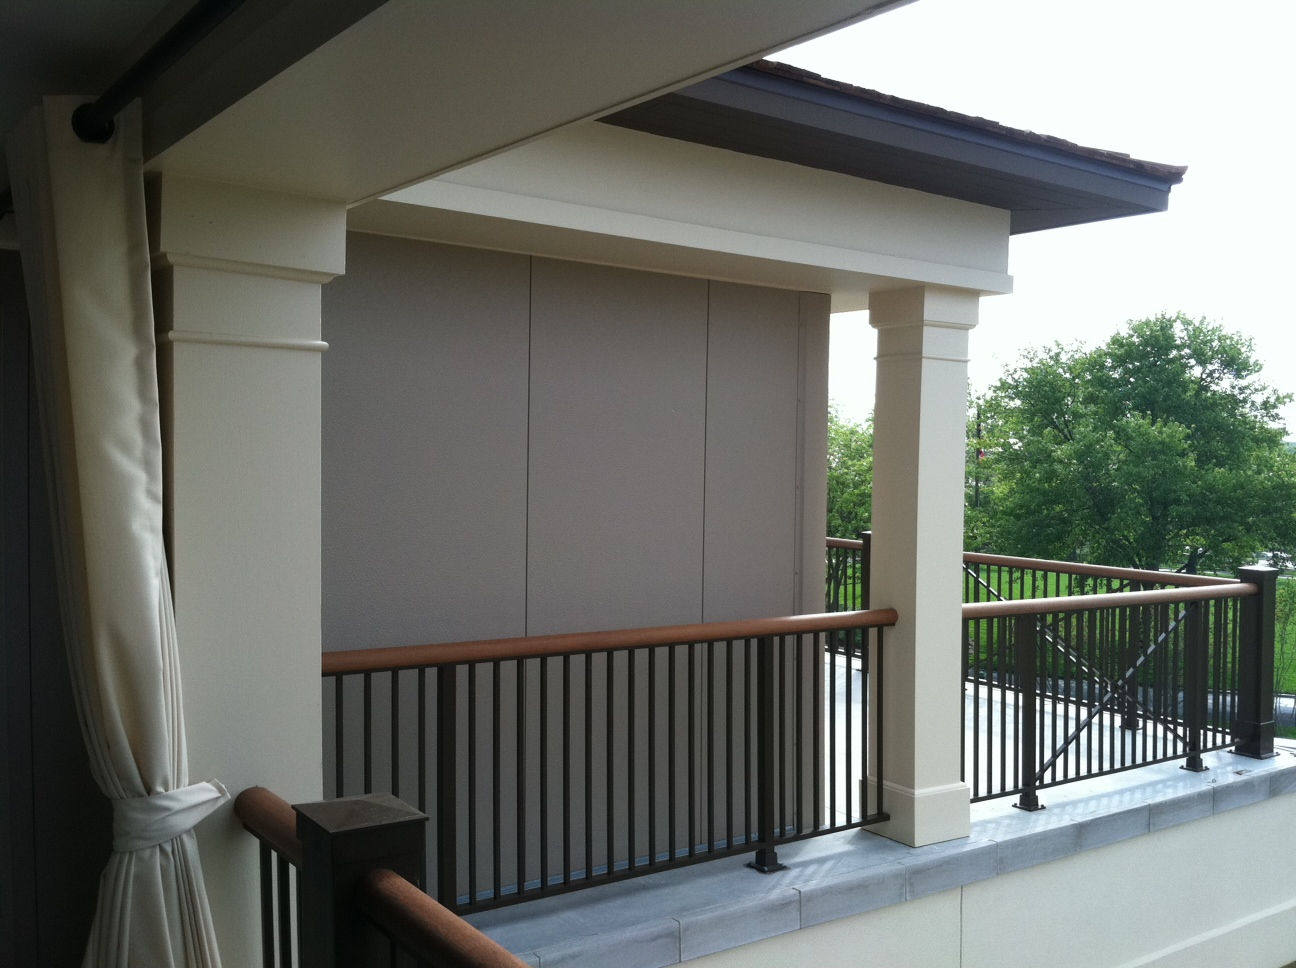 Ceco Insulated Wall Panels Allow Famed Golf Course To